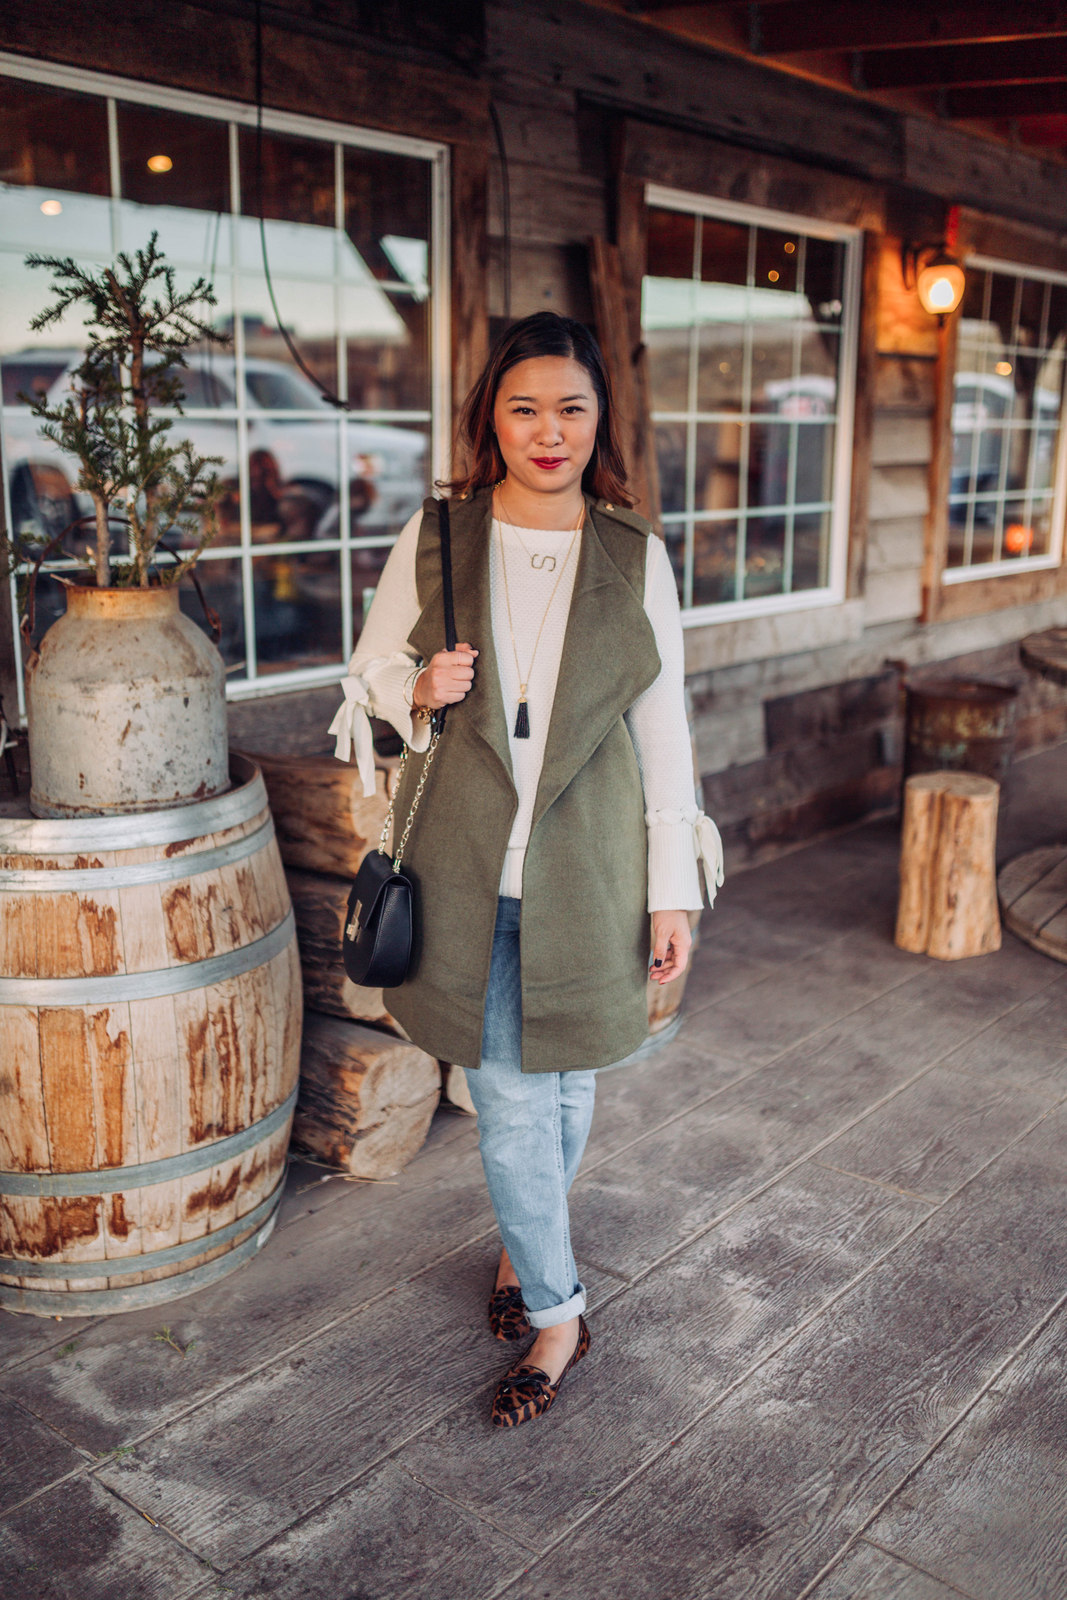 talbots outfit - Because I am A Lady by Utah lifestyle blogger Sandy A La Mode